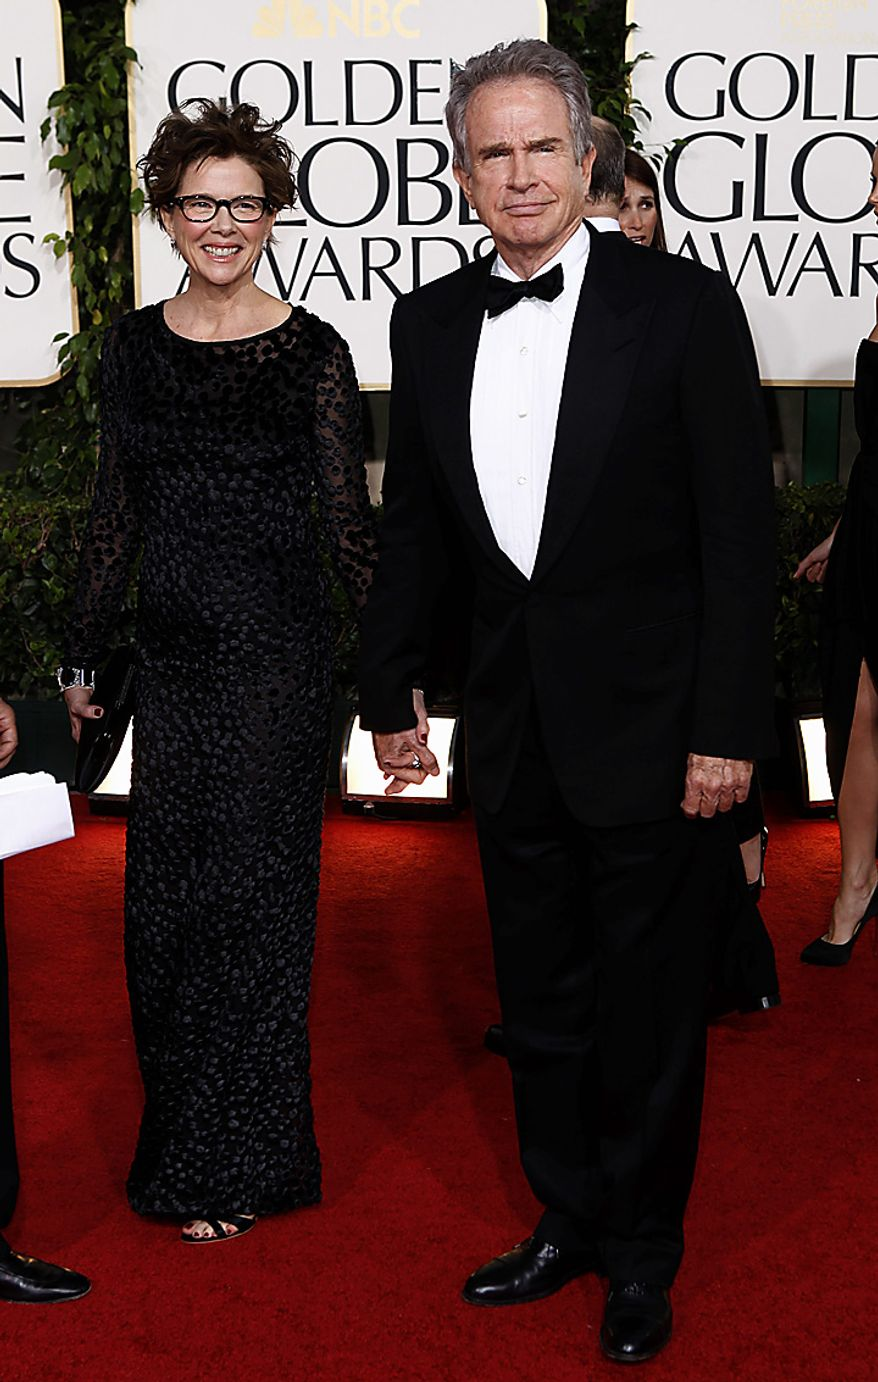 Actors Annette Bening and Warren Beatty arrive at the Golden Globe Awards Sunday, Jan. 16, 2011, in Beverly Hills, Calif. (AP Photo/Matt Sayles)